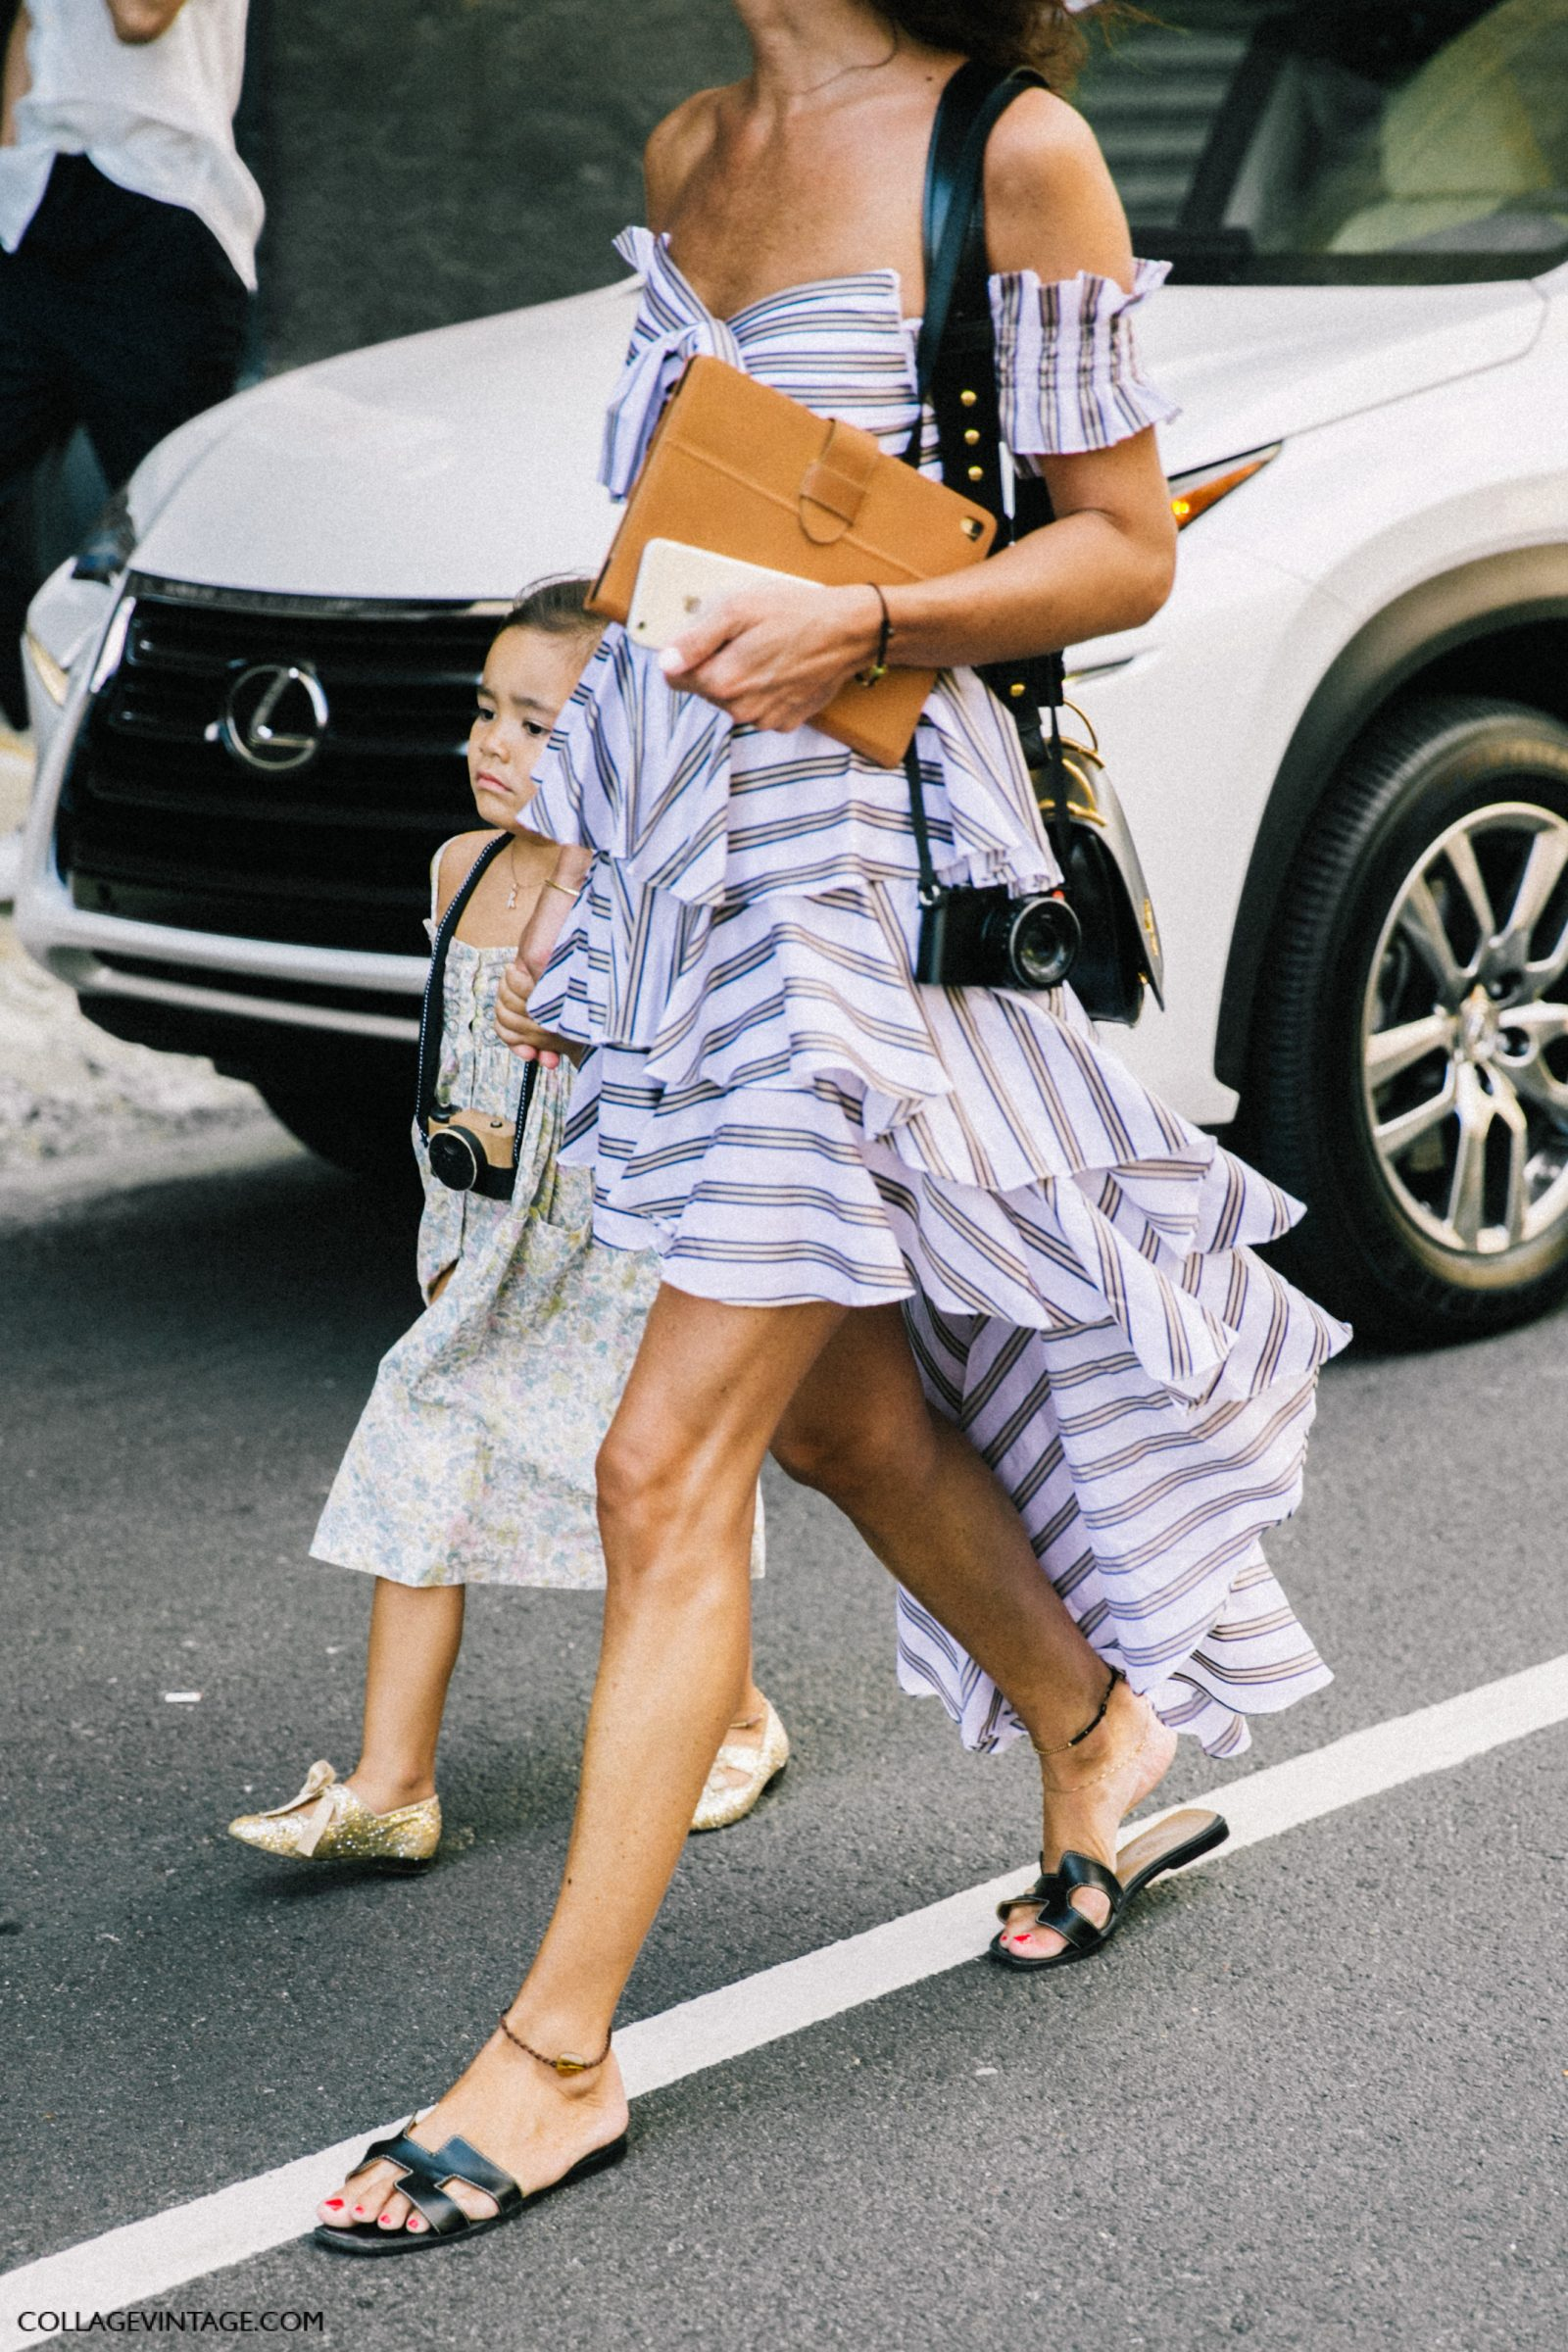 nyfw-new_york_fashion_week_ss17-street_style-outfits-collage_vintage-vintage-phillip_lim-the-row-proenza_schouler-rossie_aussolin-292